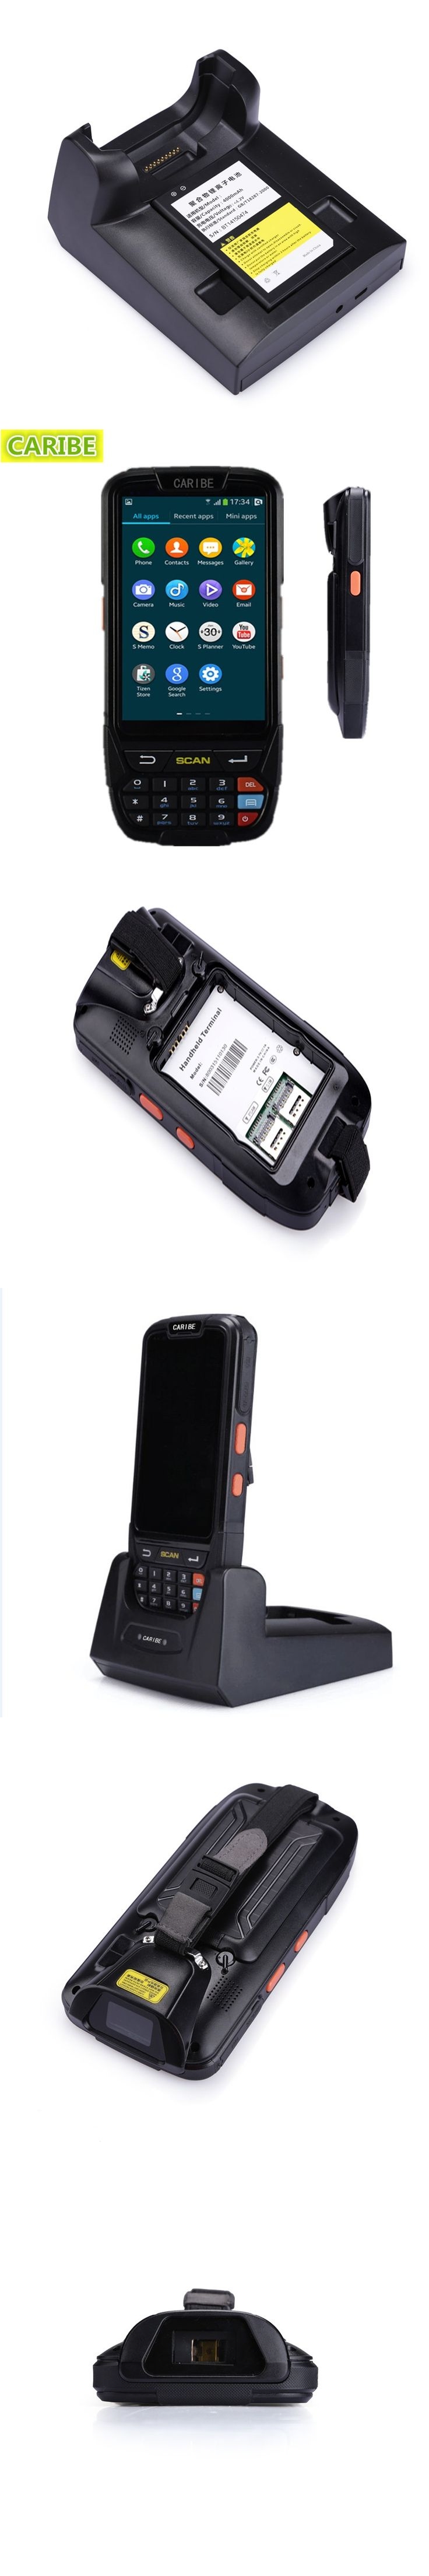 Caribe PL-40L Waterproof 2d laser barcode wifi data collector rugged tablet with rfid reader nfc